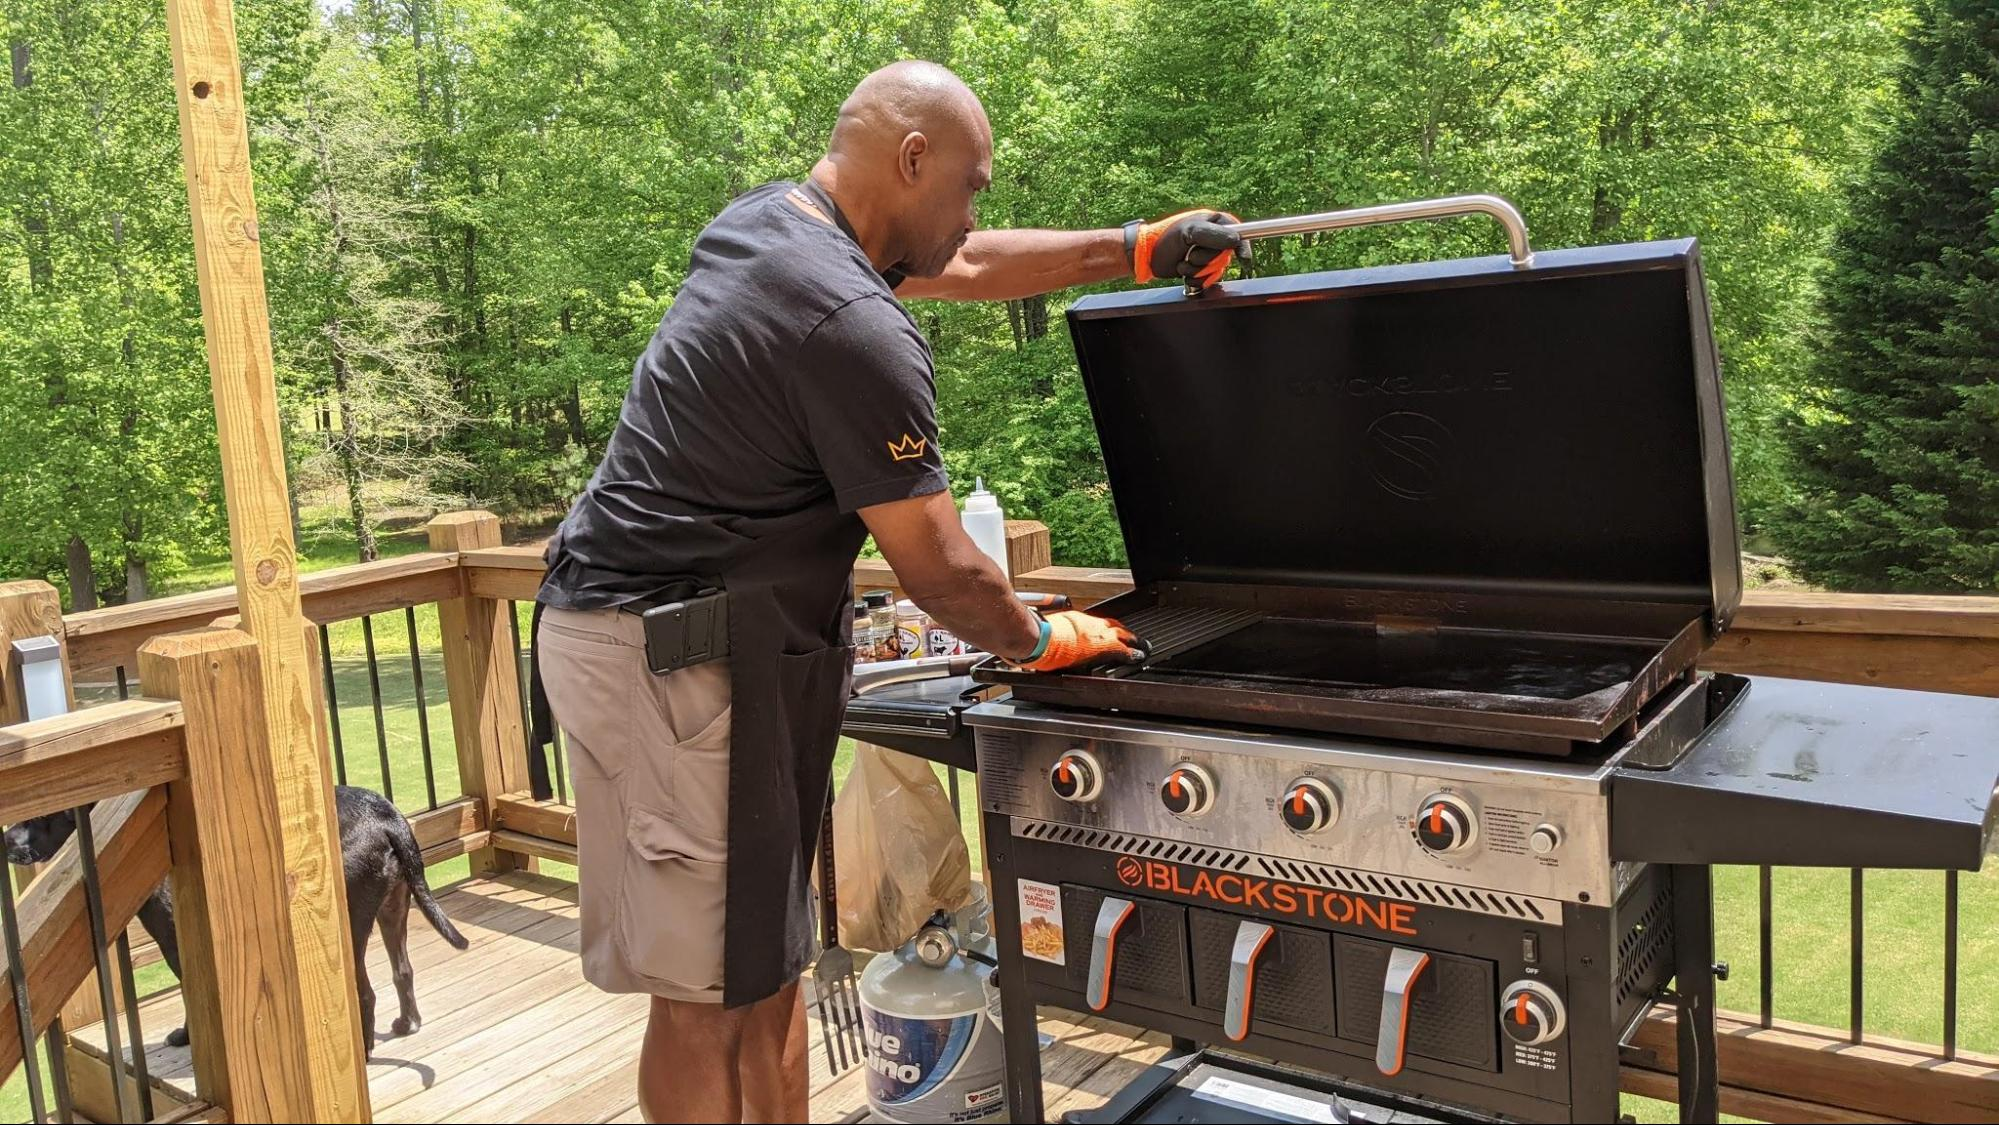 Keith Sims Prepping Grill